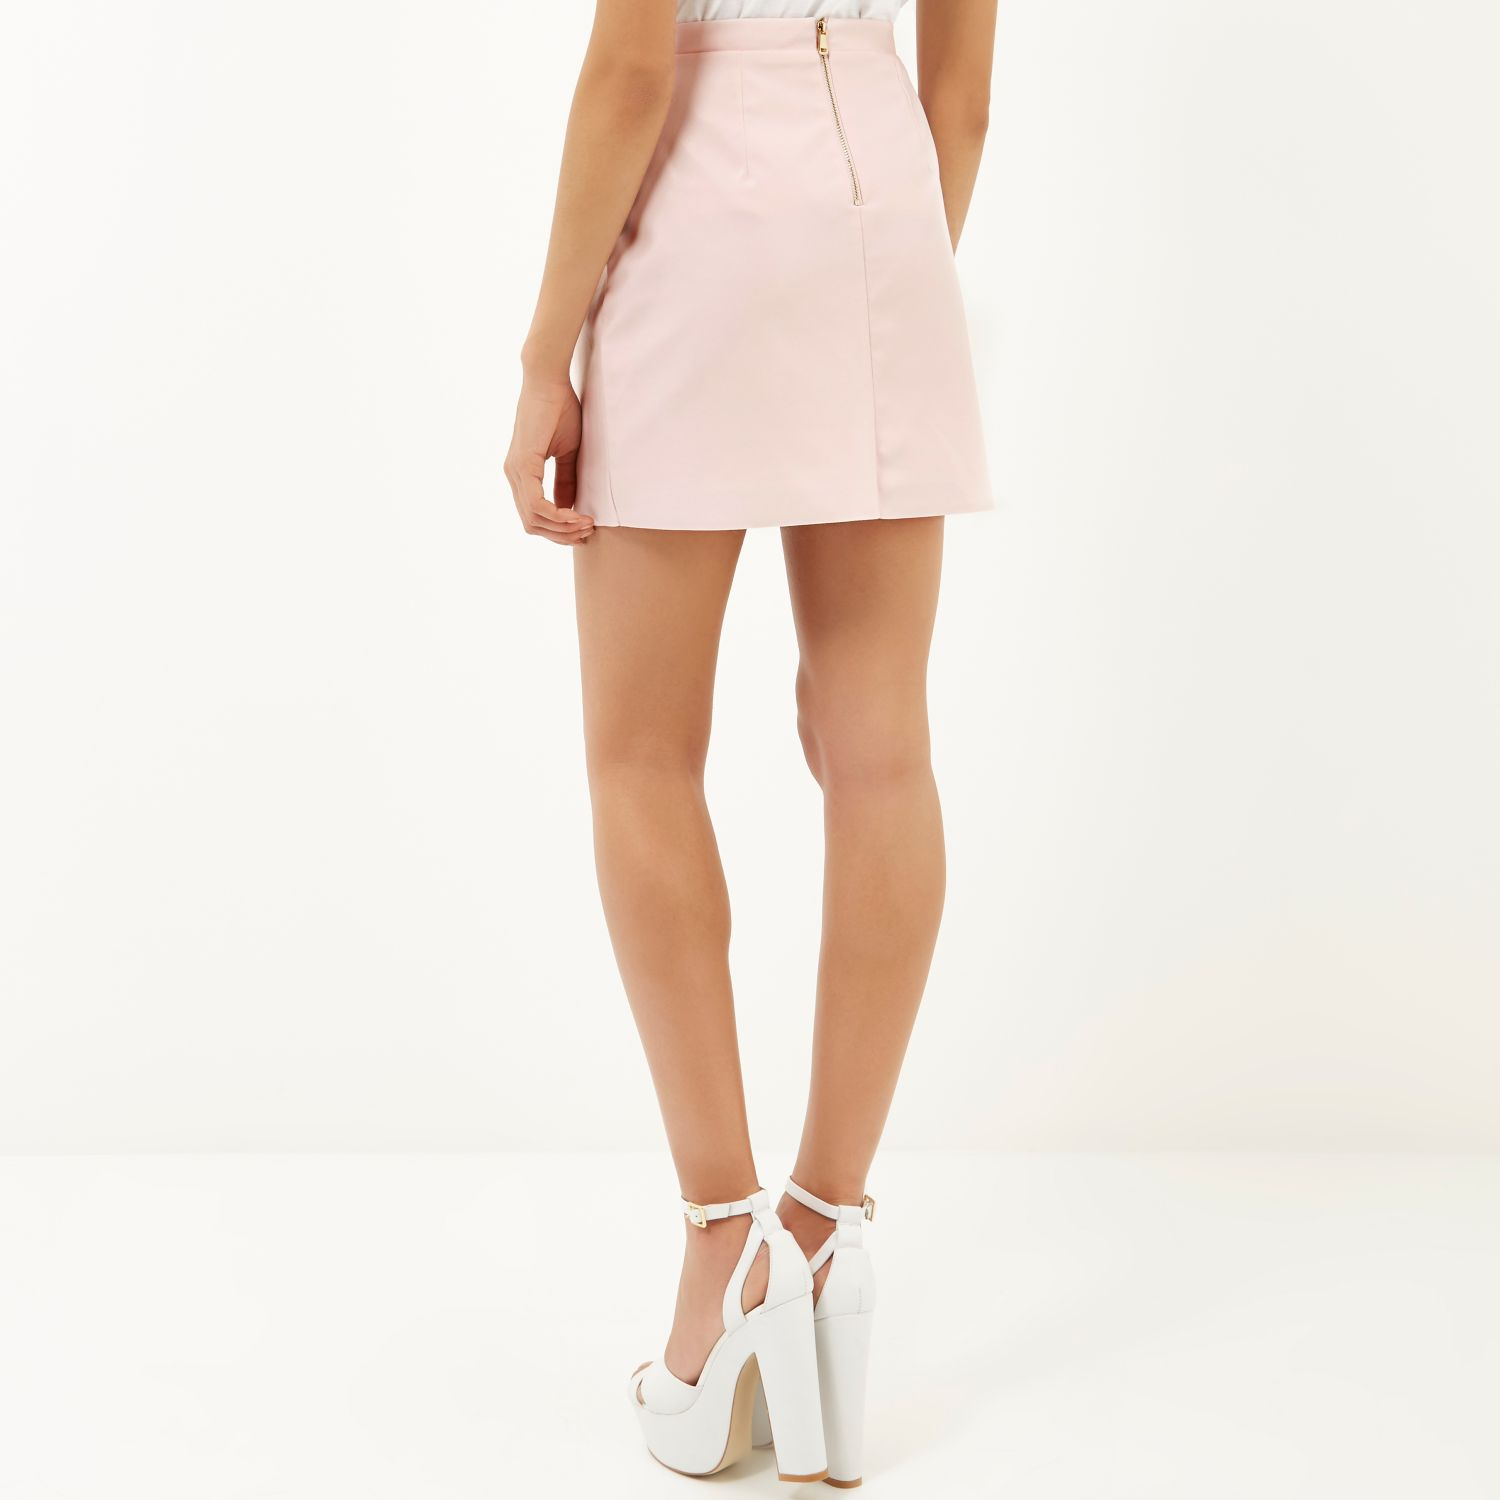 4917c9d391 River Island Light Pink Leather Skirt